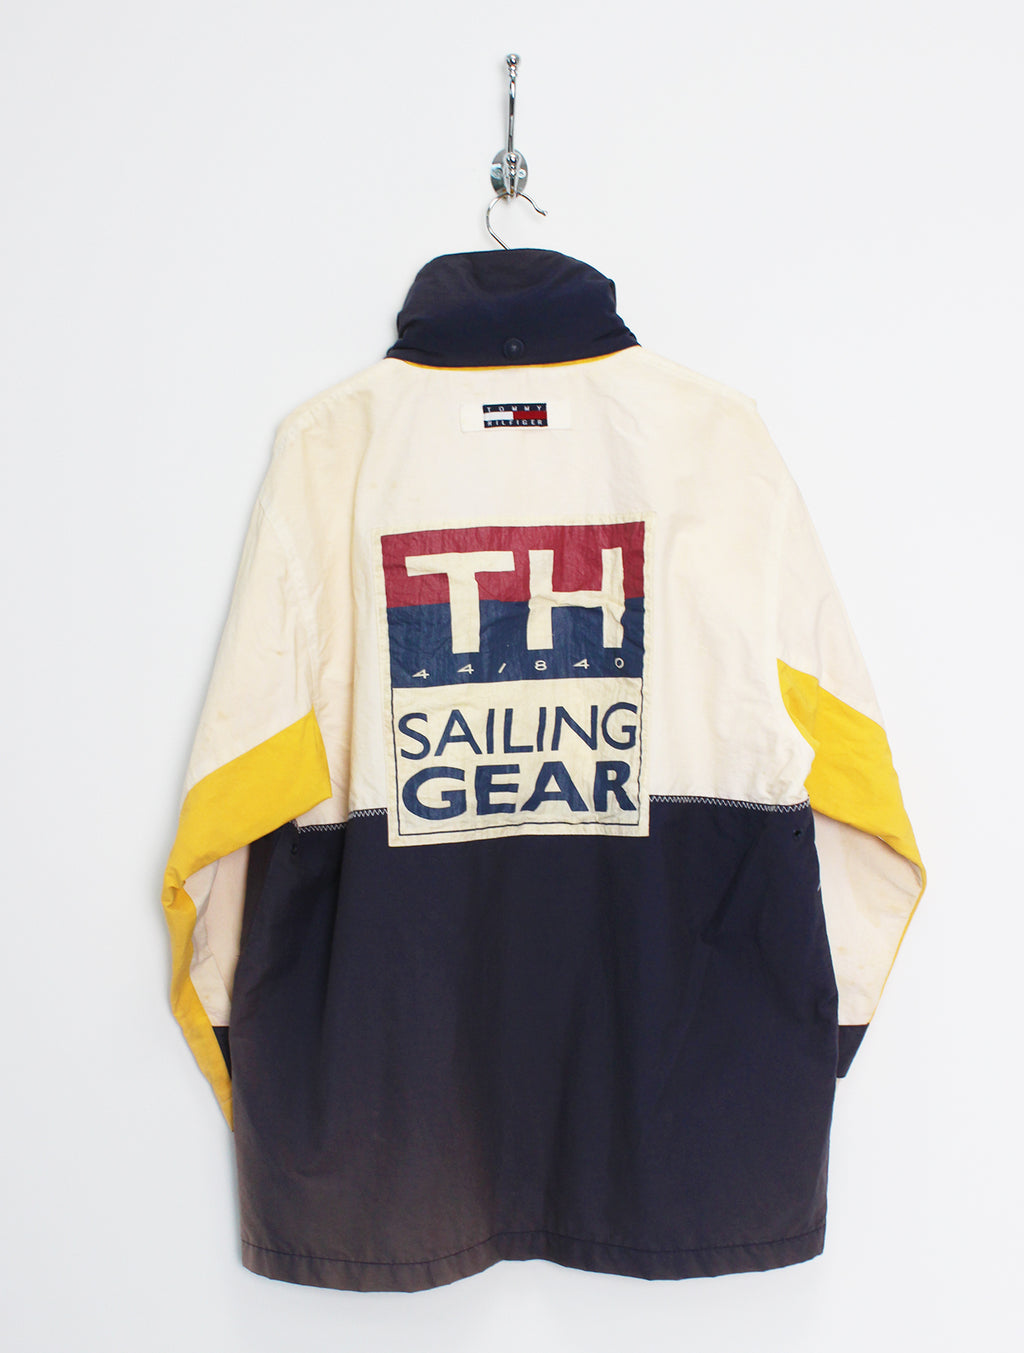 Tommy Hilfiger Sailing Gear Jacket (L)